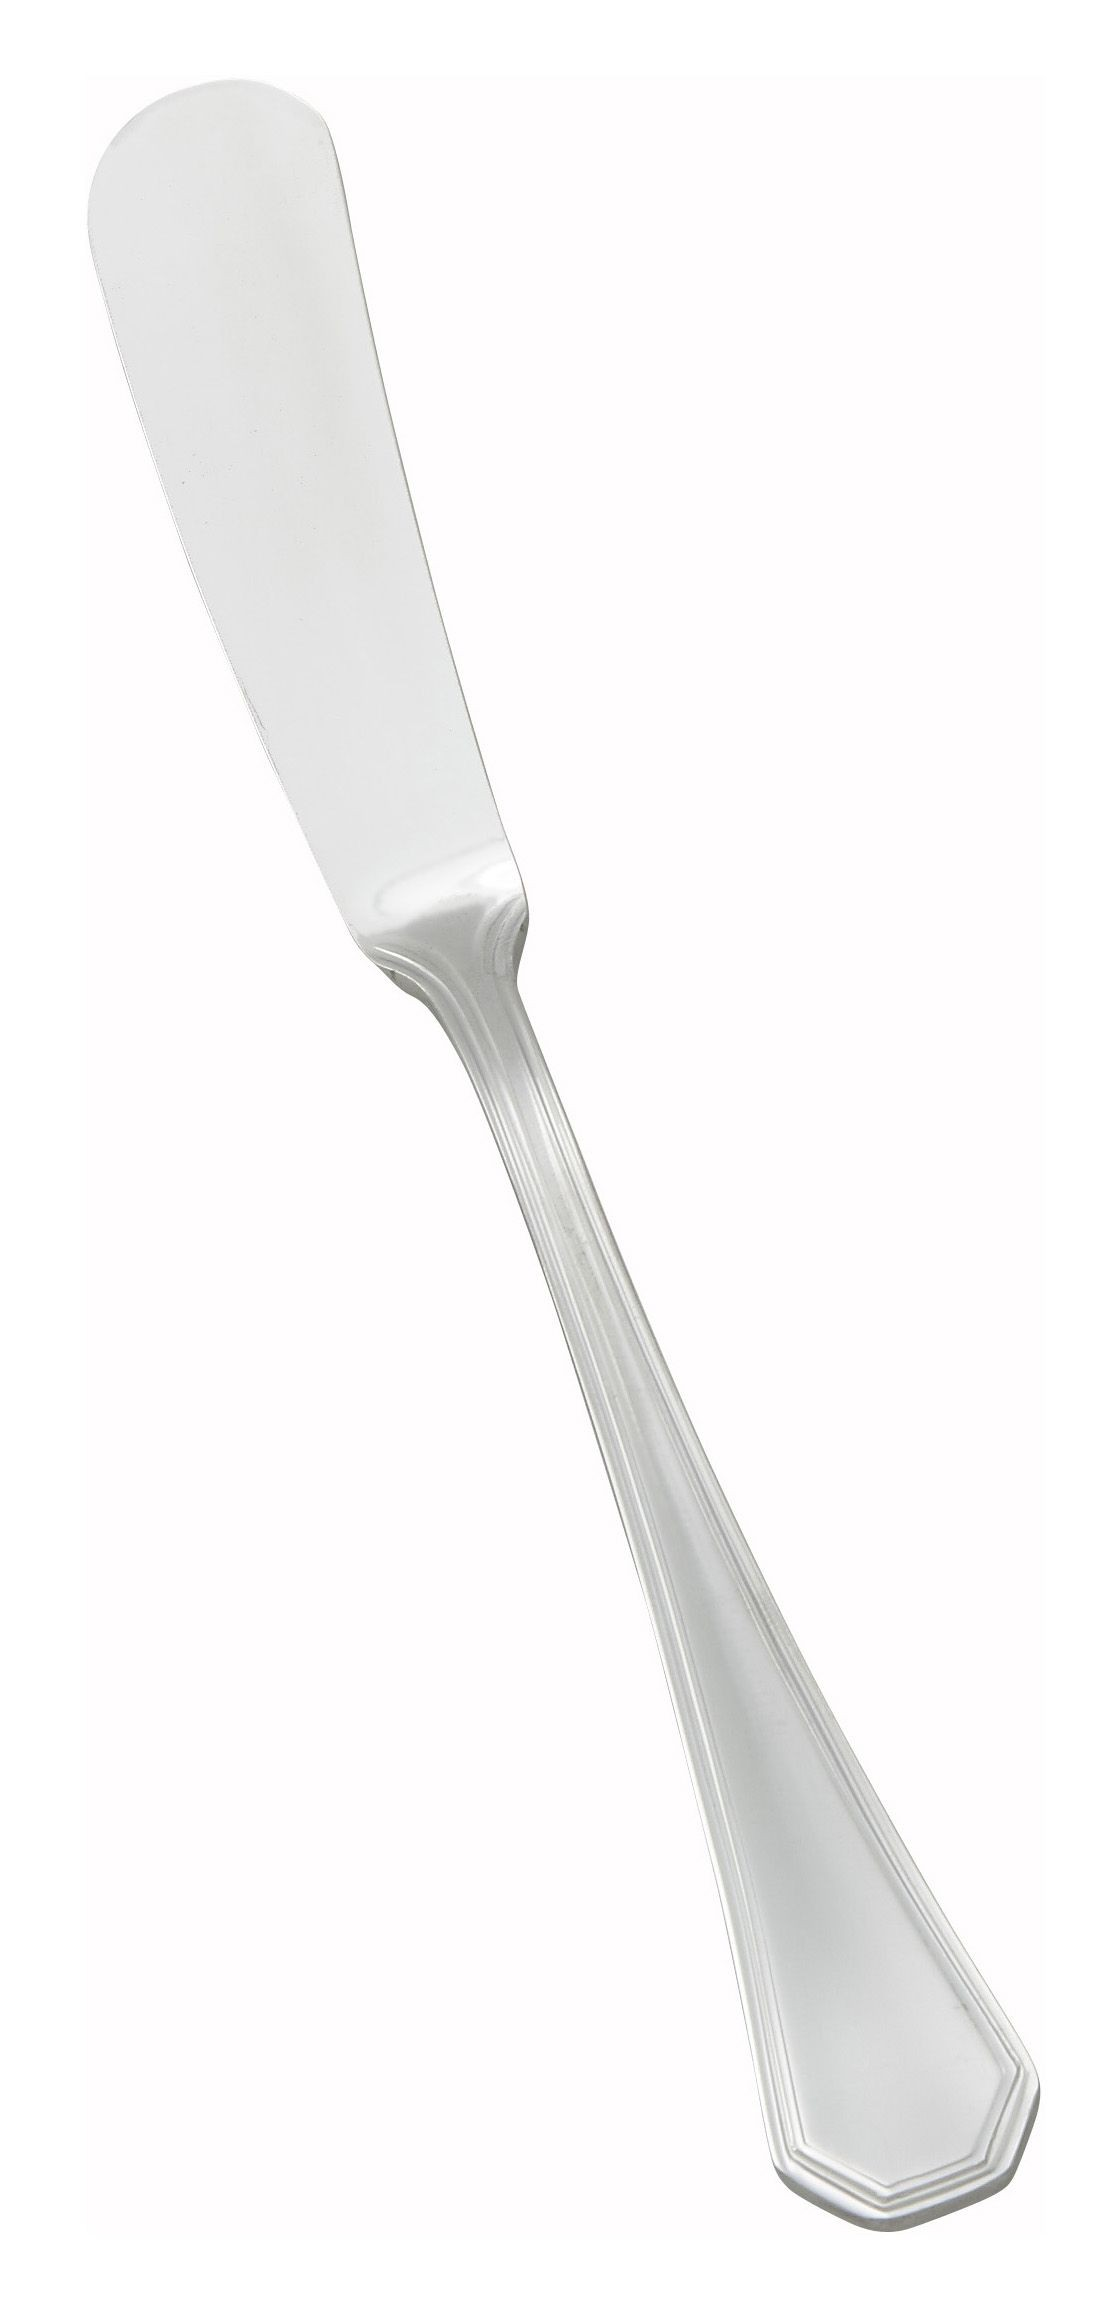 Victoria Extra Heavy 18/8 Stainless Steel Butter Spreader (12/Pack)